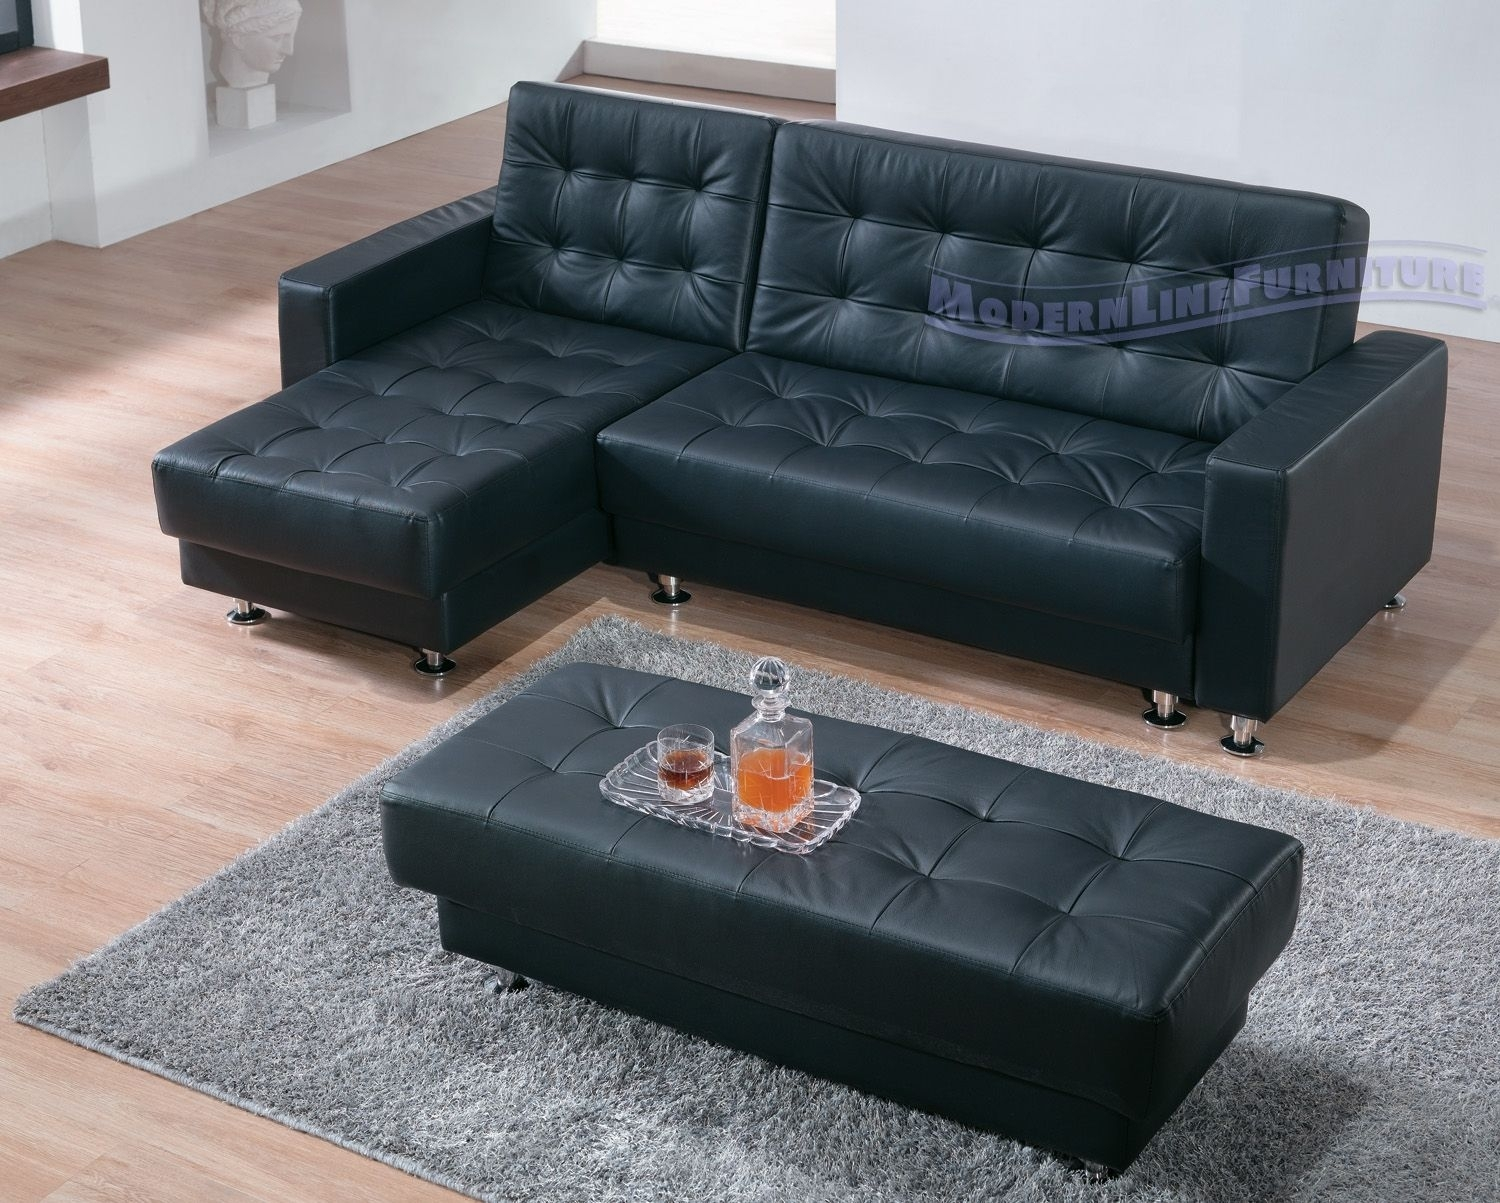 Black Leather Modern Sectional Sofa Sleeper With Ottoman | For The pertaining to Sectional Sleeper Sofas With Ottoman (Image 2 of 15)